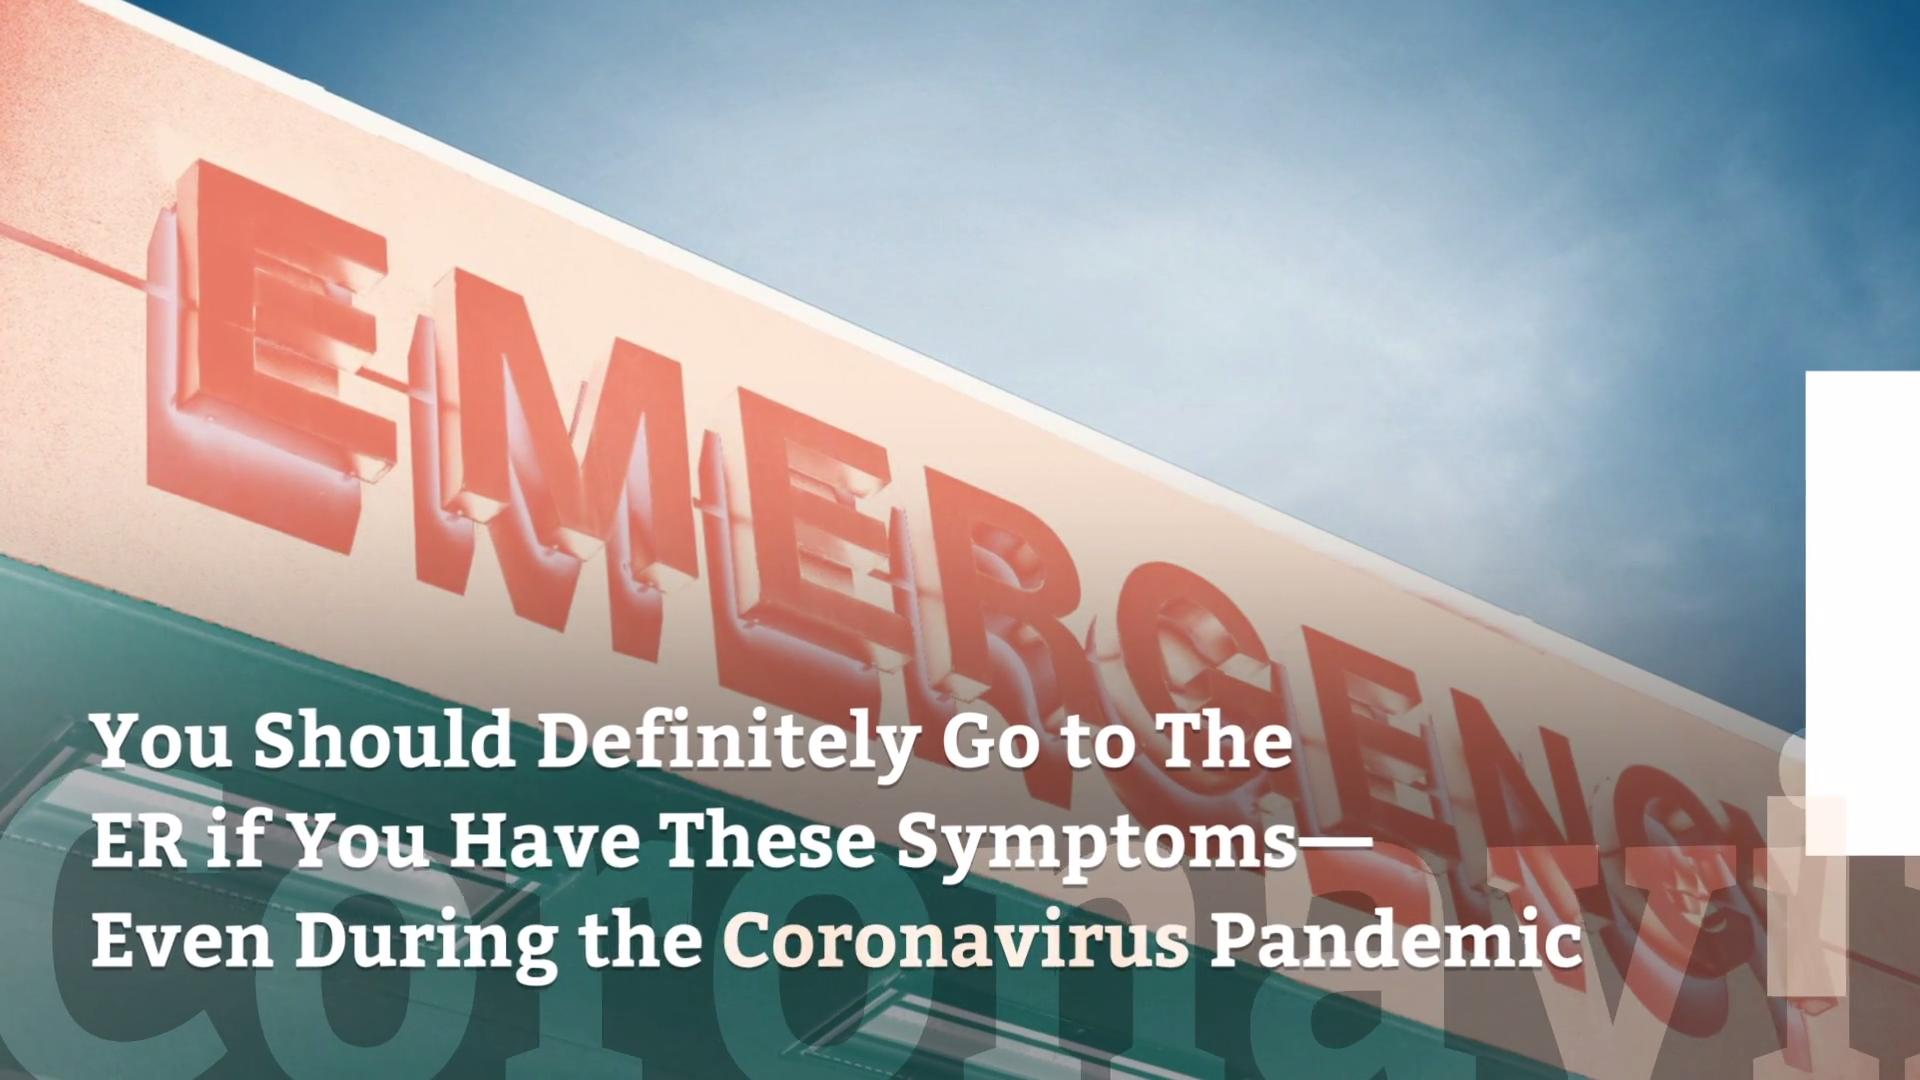 You Should Definitely Go to The ER if You Have These Symptoms—Even During the Coronavirus Pandemic